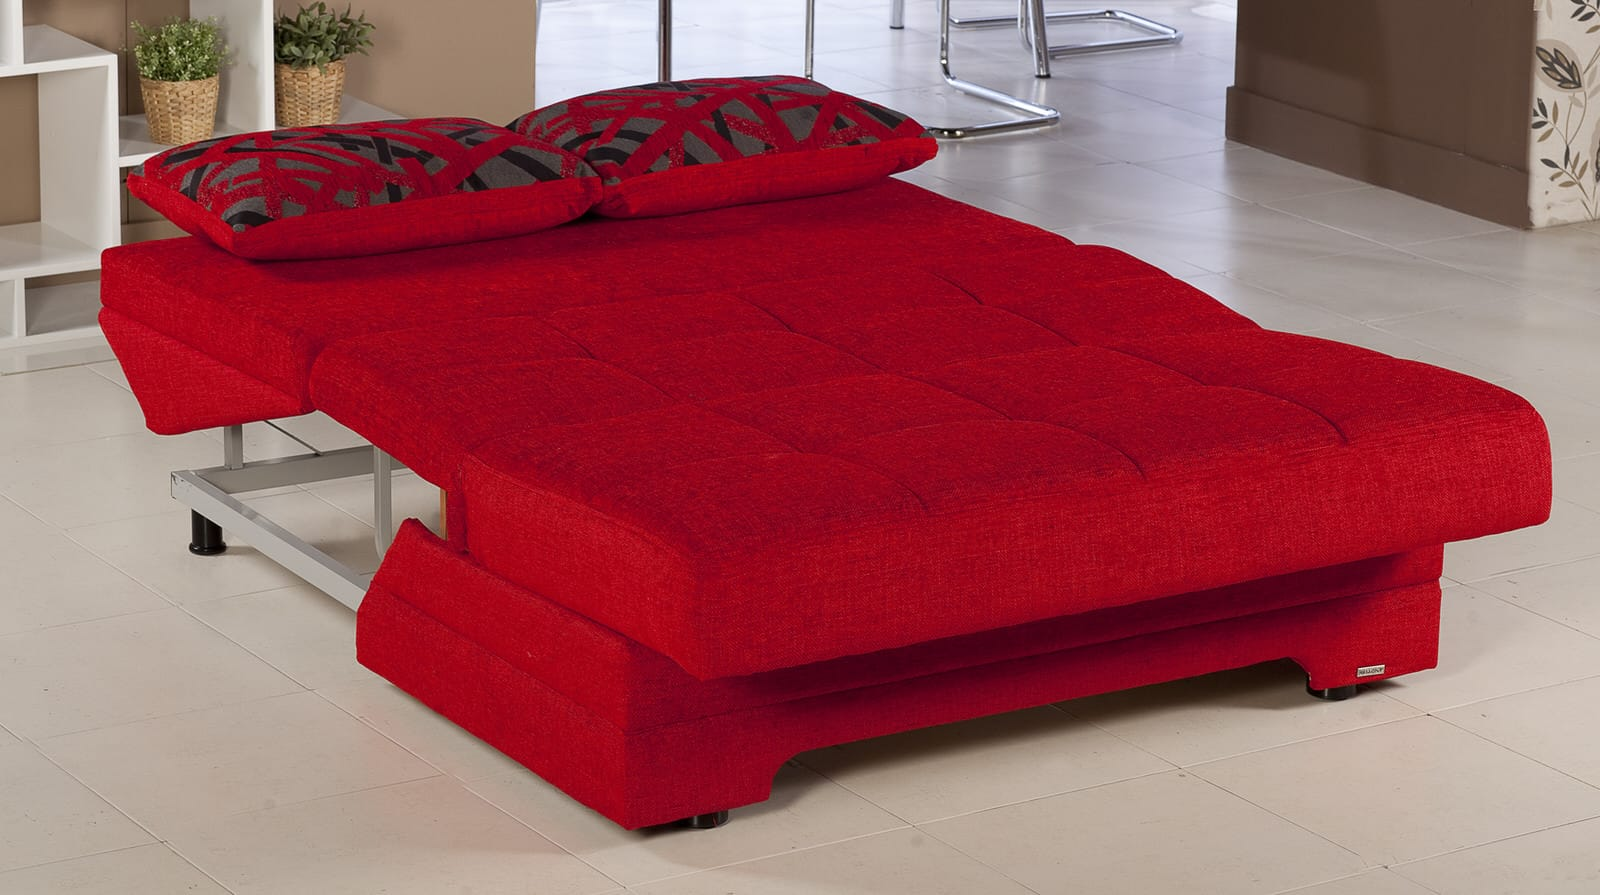 Twist story red loveseat sleeper by istikbal sunset for Sofa bed red